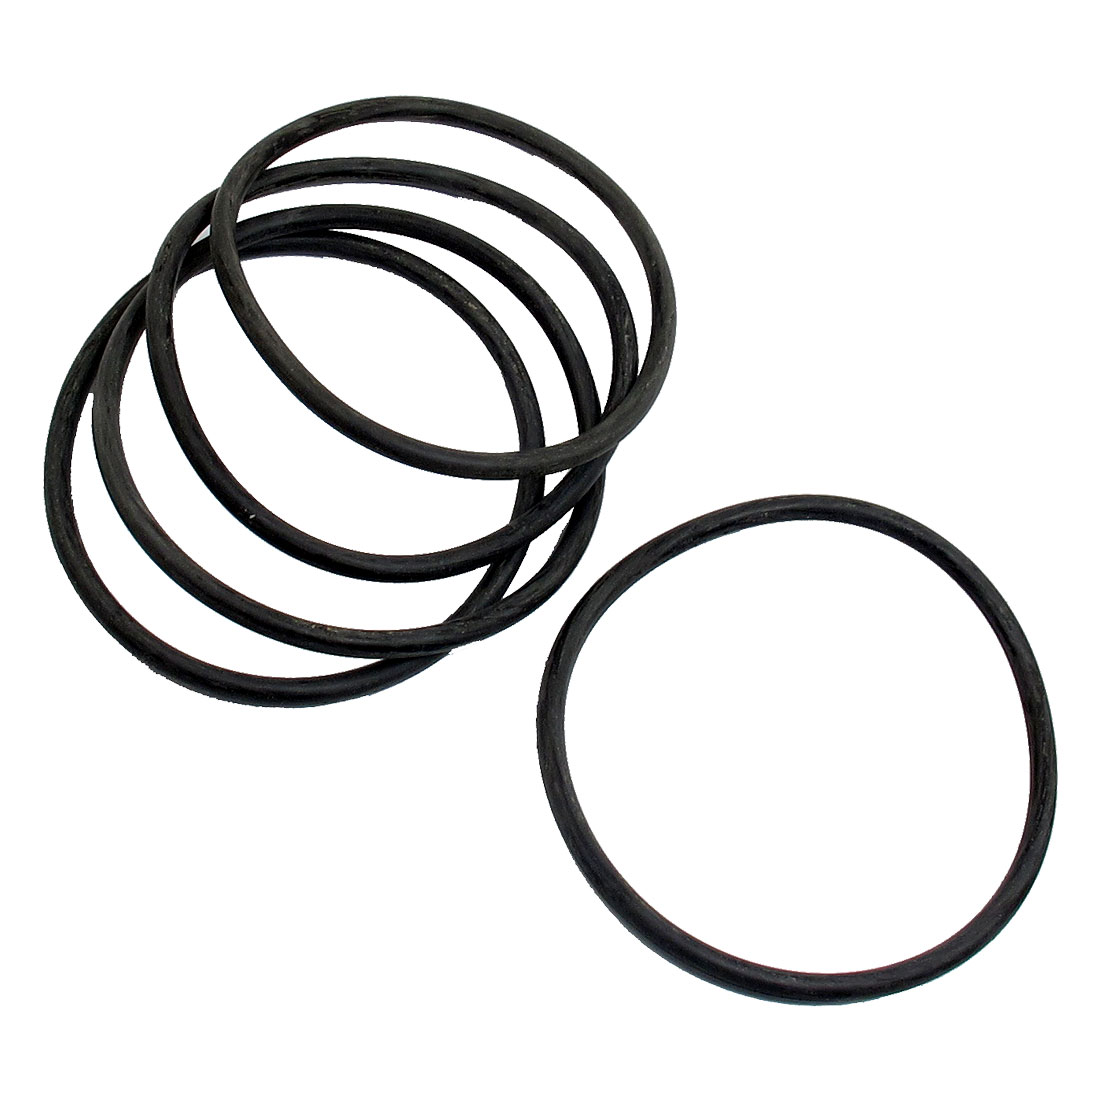 5 Pcs 80mm Outside Dia 4mm Thick Filter Rubber O Ring Seal Black